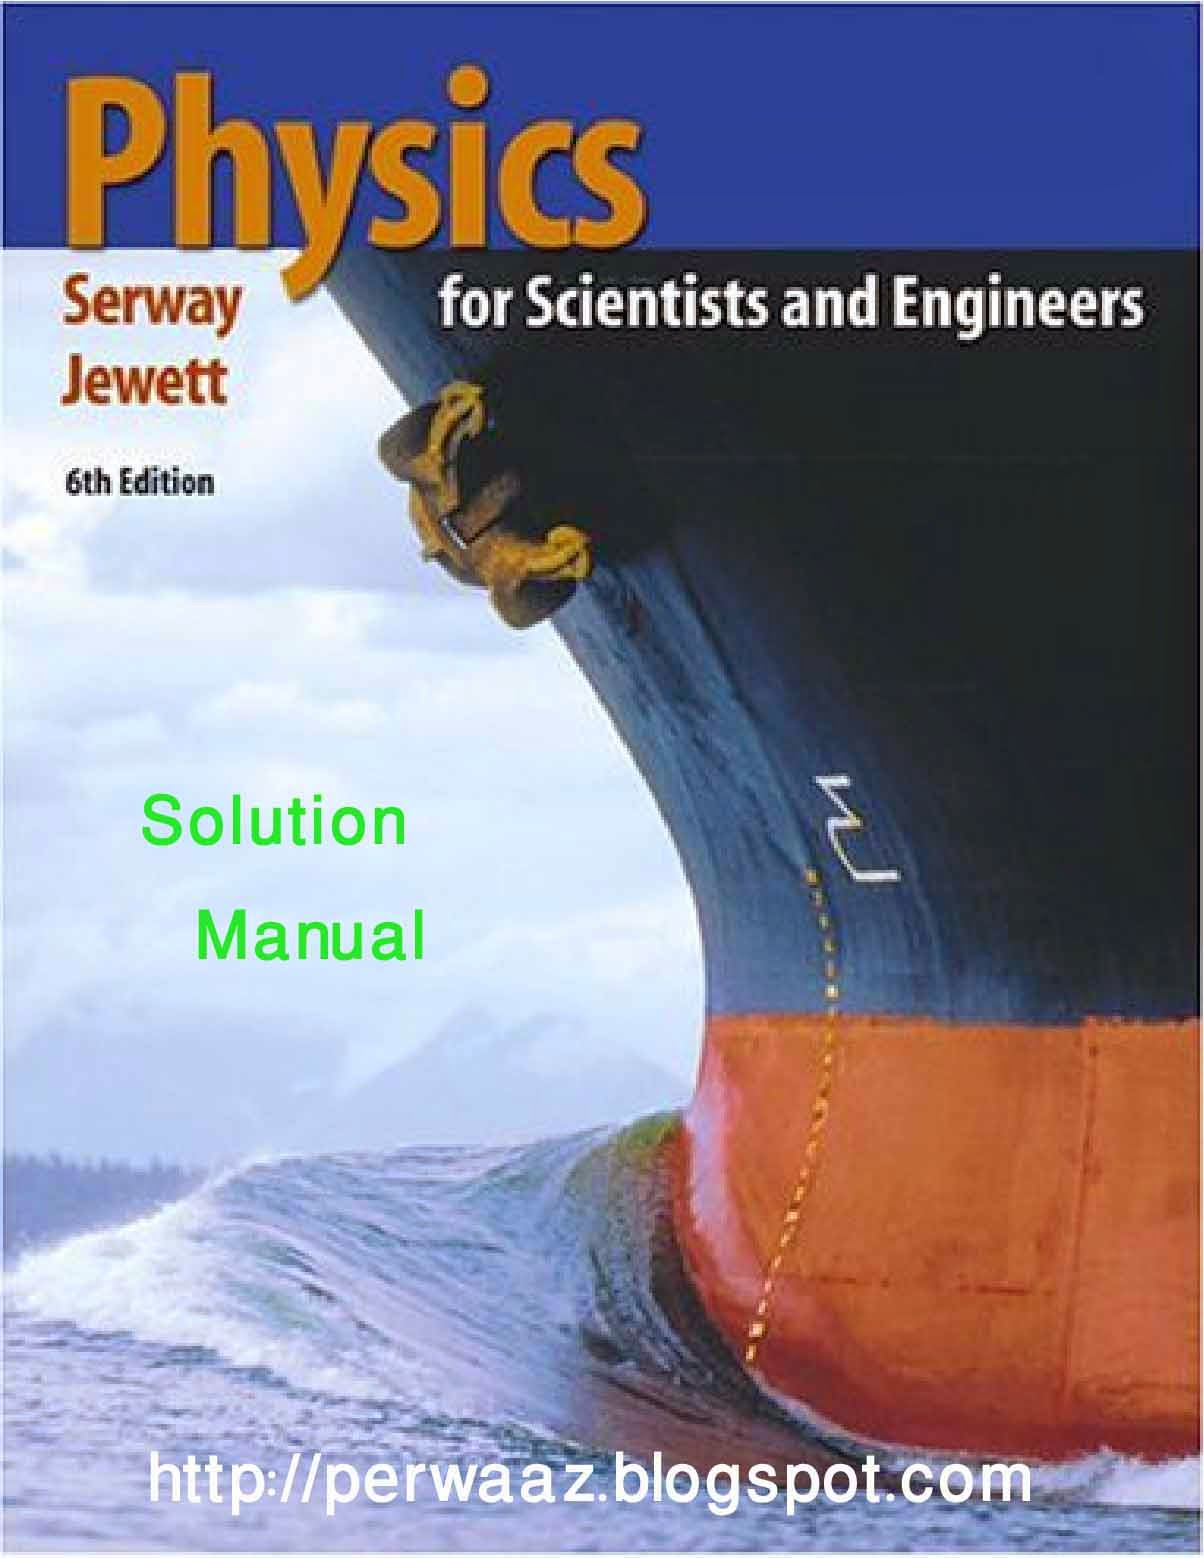 Solution manual of Physics for Scientist and Engineers 9th edition